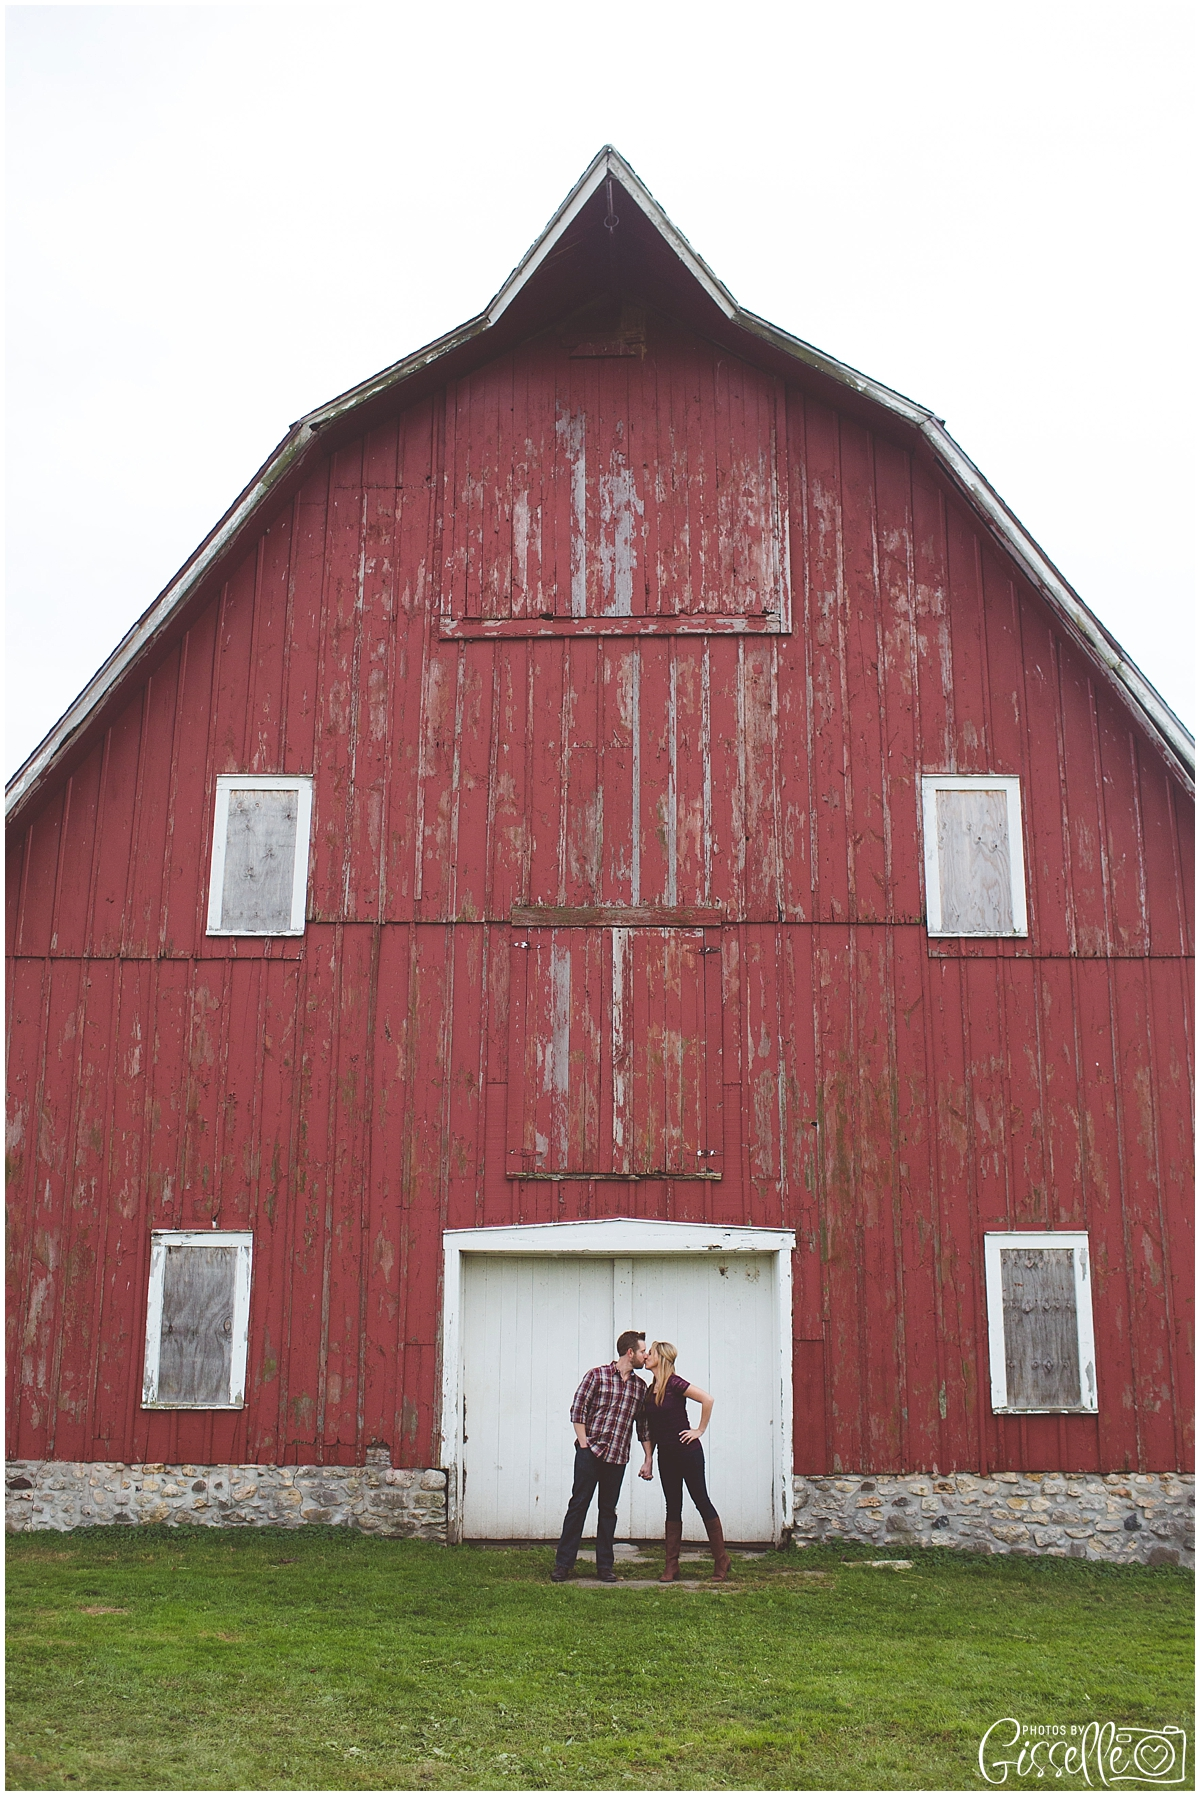 StCharles_Engagement_Photography_Leroy_oakes_0008.jpg